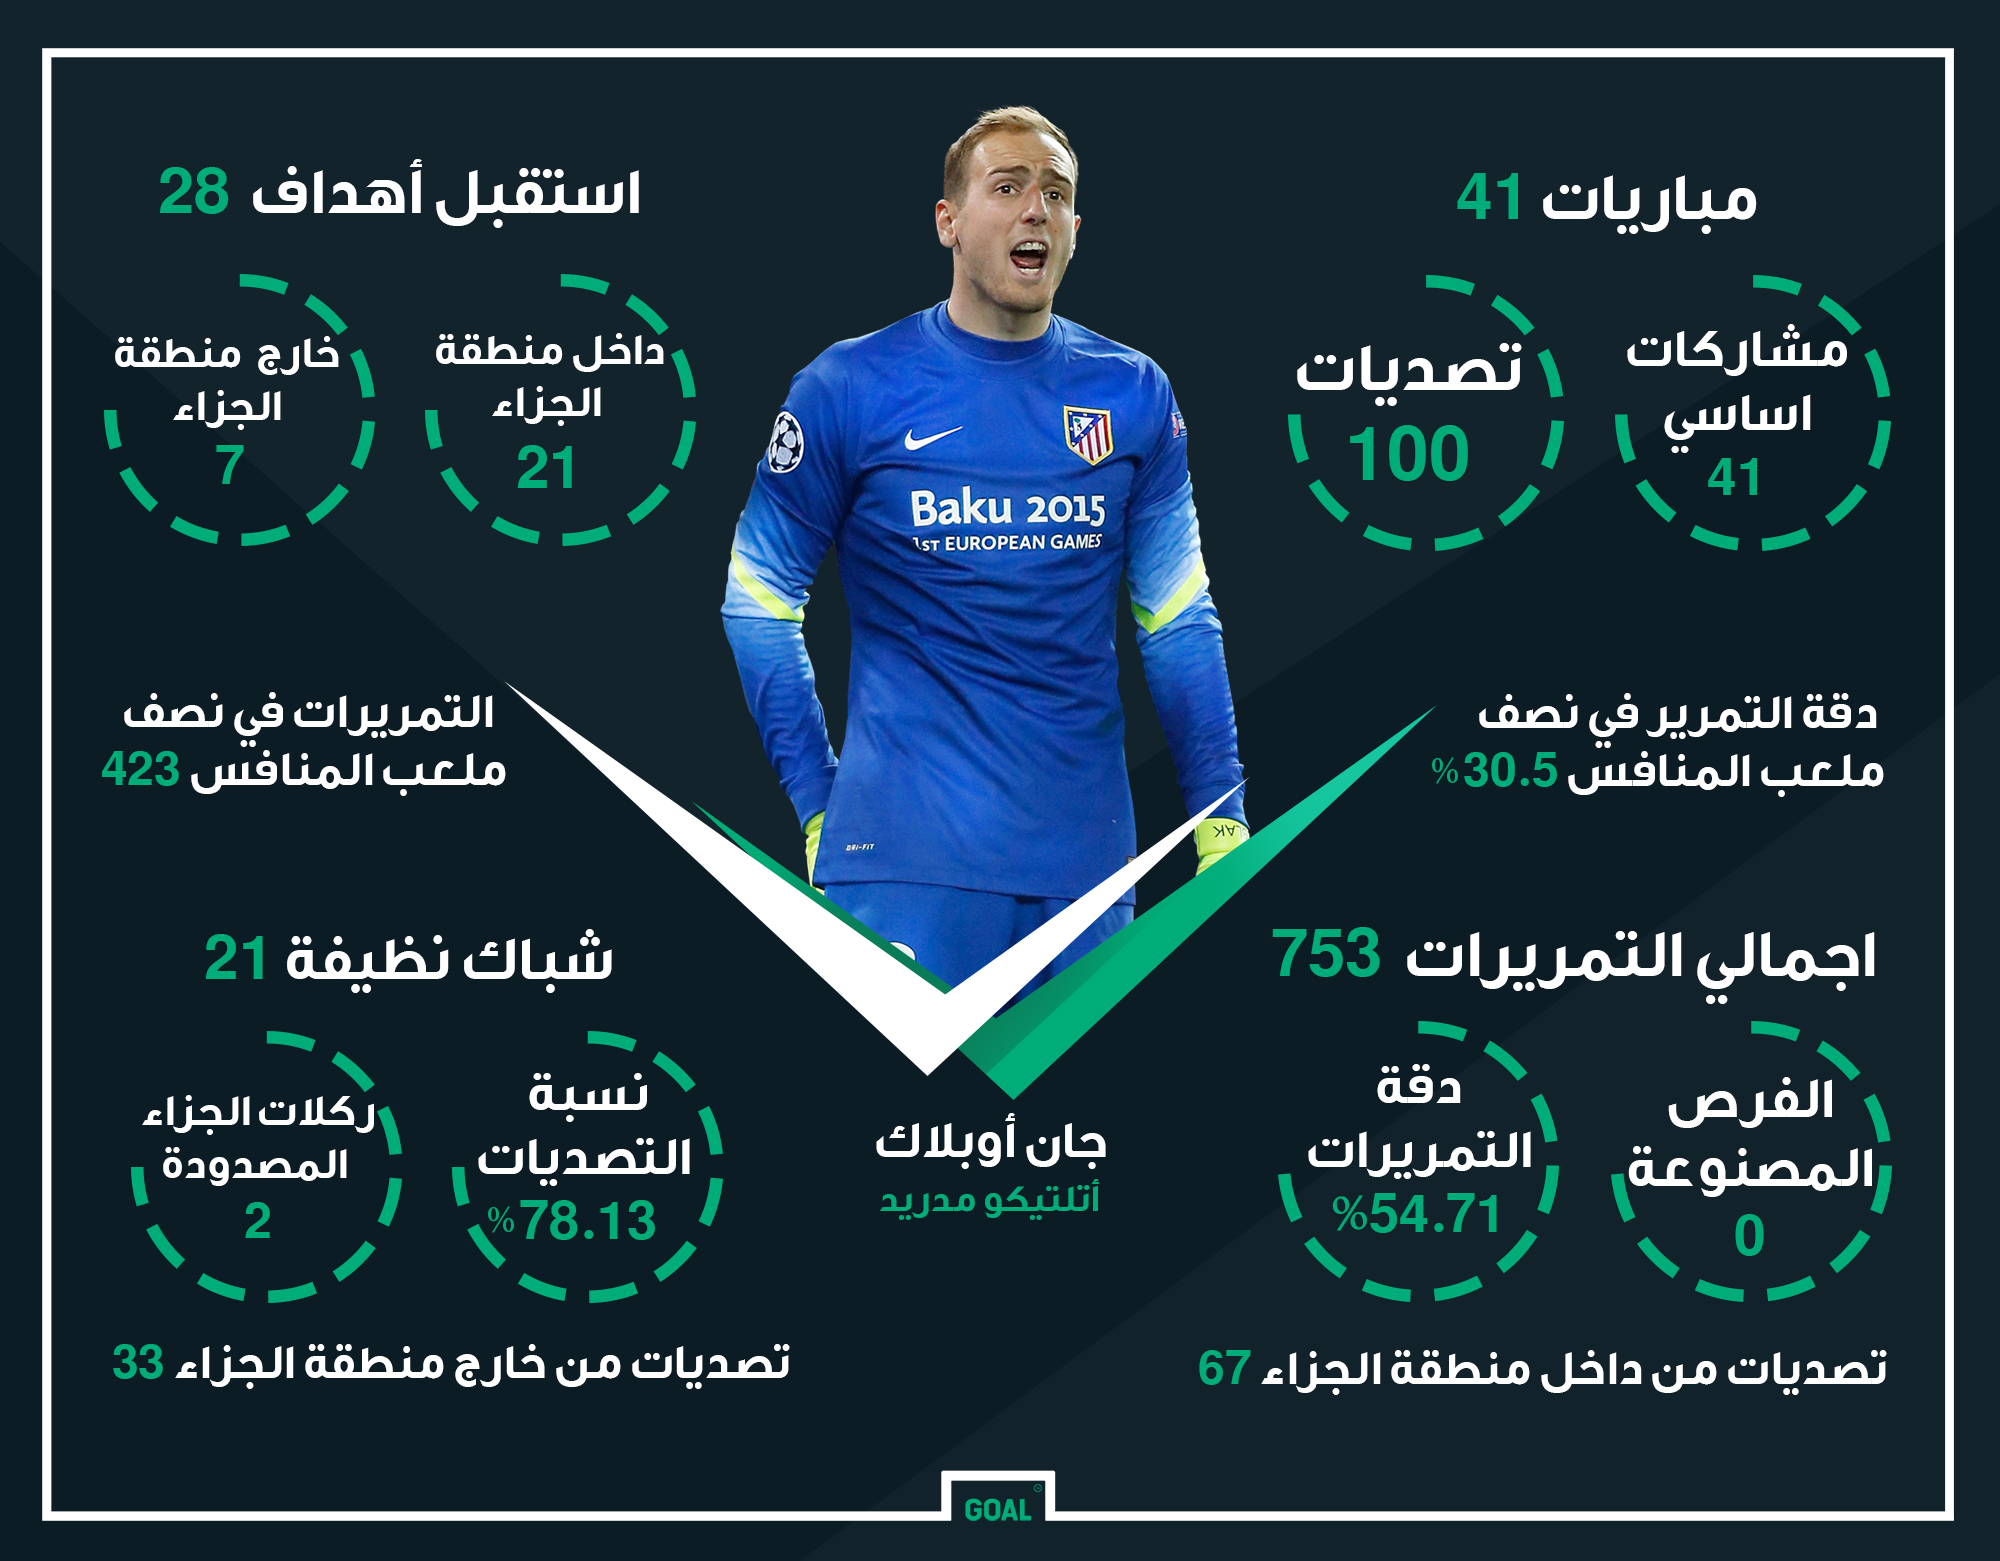 Arabic Oblak Atletico madrid